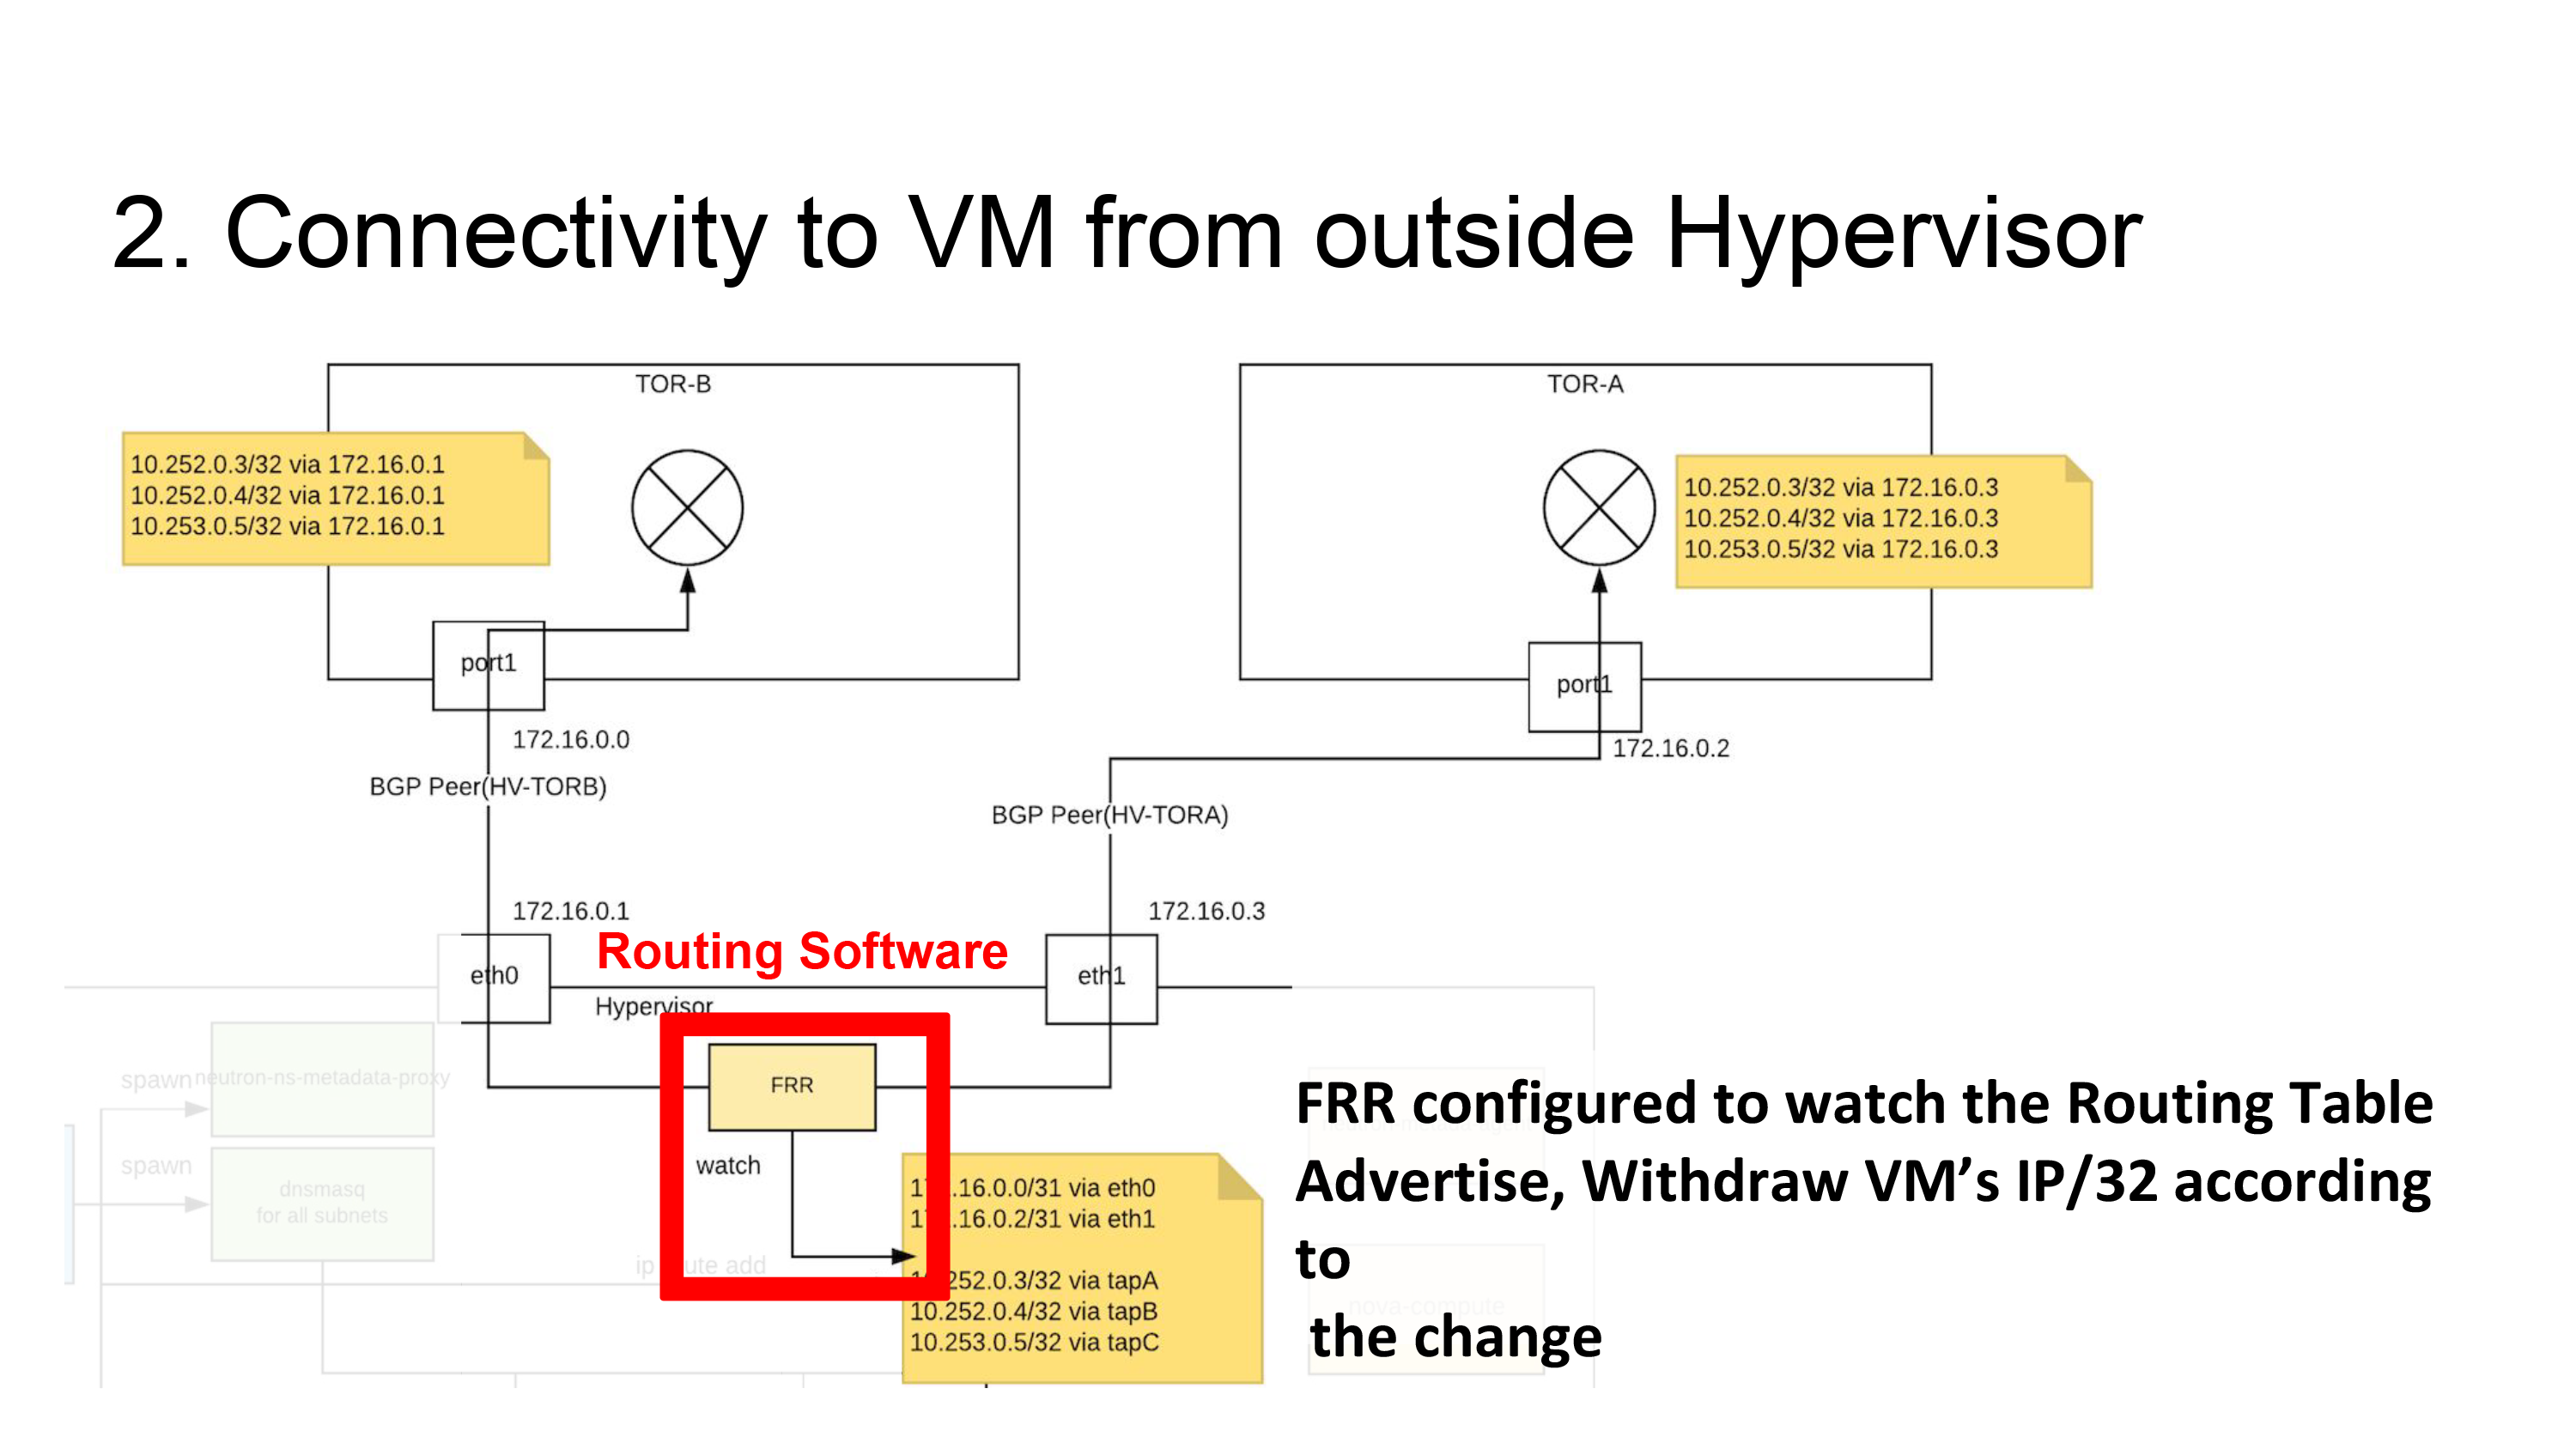 Connectivity to VM from outside Hypervisor